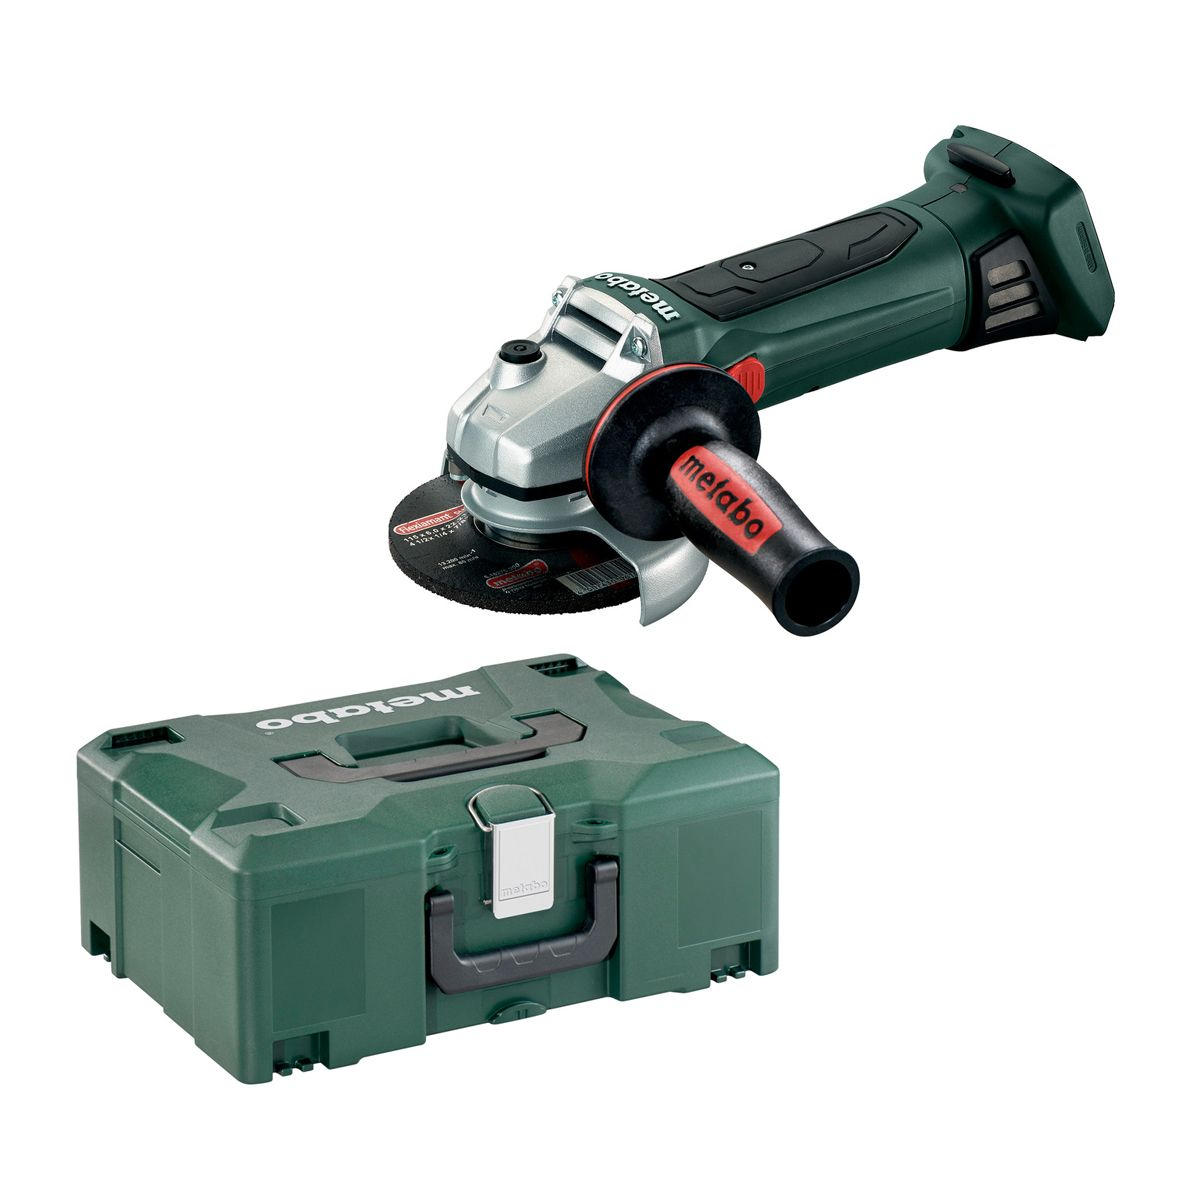 Hitachi Slijptol Accu Metabo W 18 Ltx 125 Quick 18v Li Ion Accu Haakse Slijper Body In Metaloc 125mm 602174840